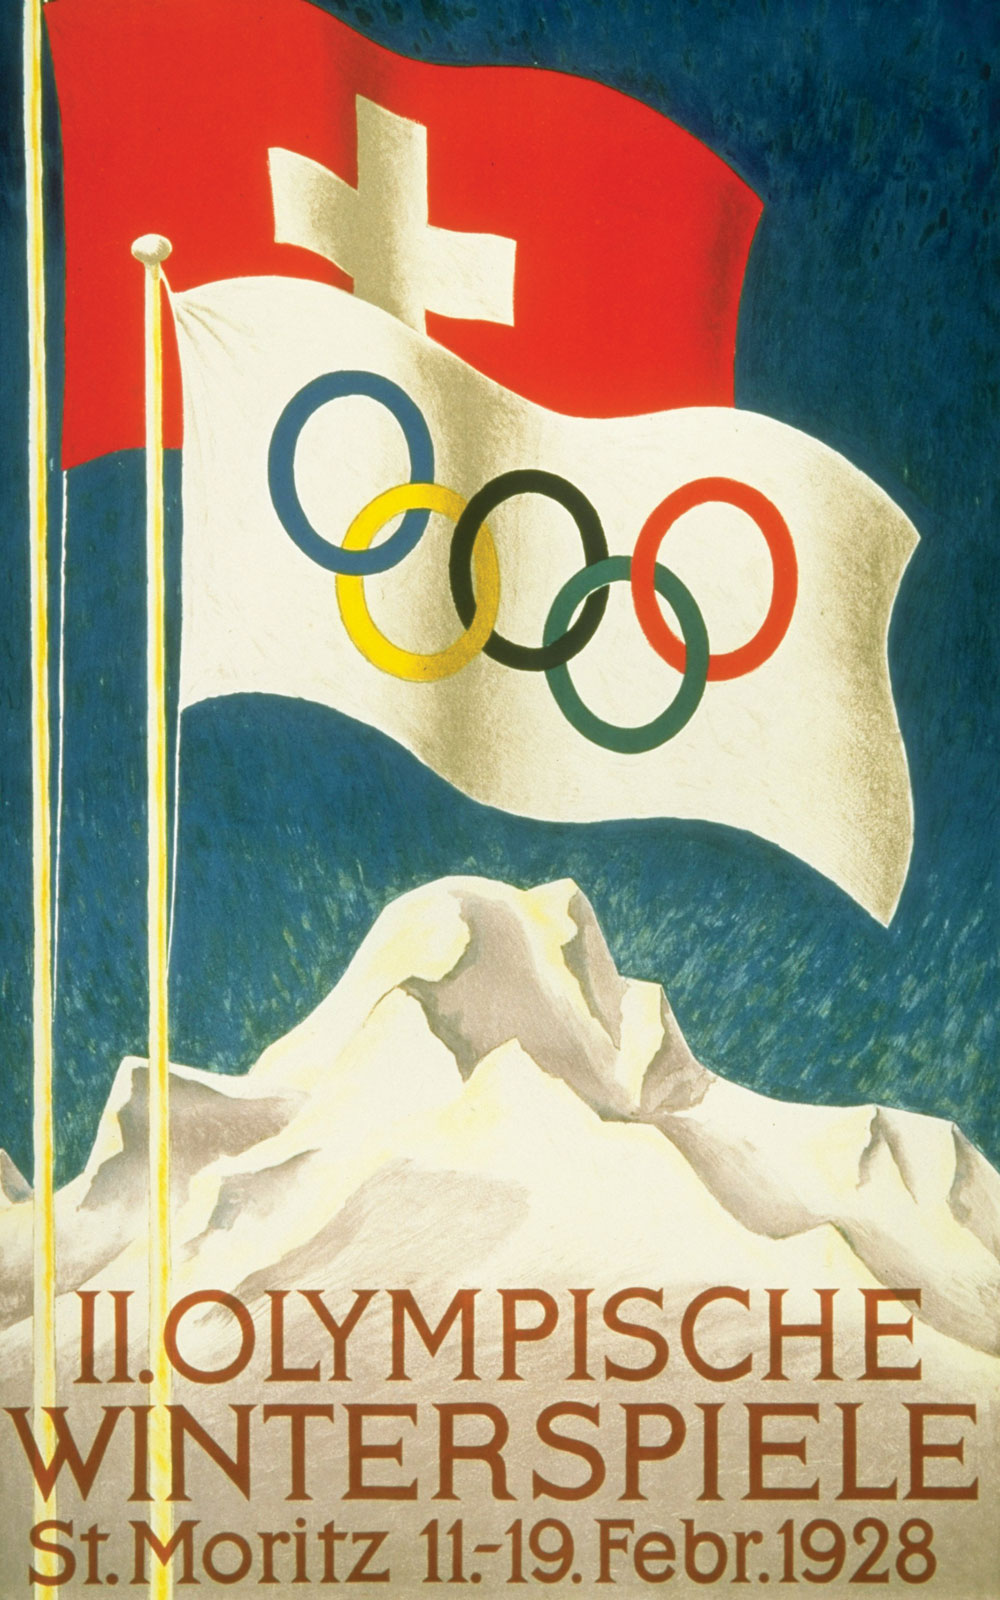 Advertising poster of the Winter Olympic Games in St. Moritz (Switzerland), 1928